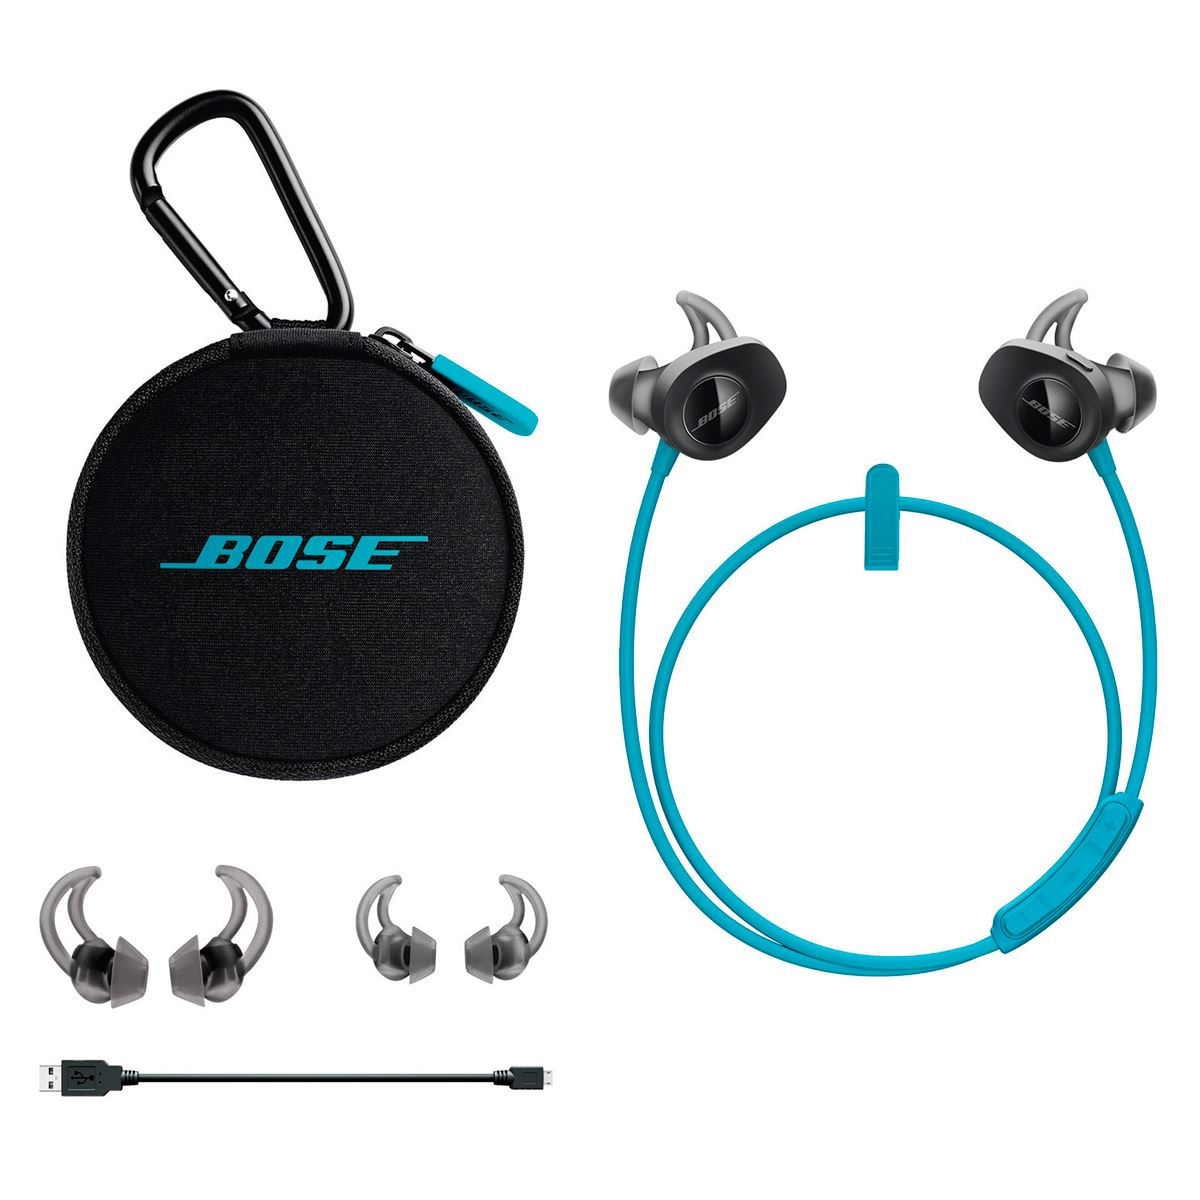 Audífonos Bose Soundsport Wireless Azul